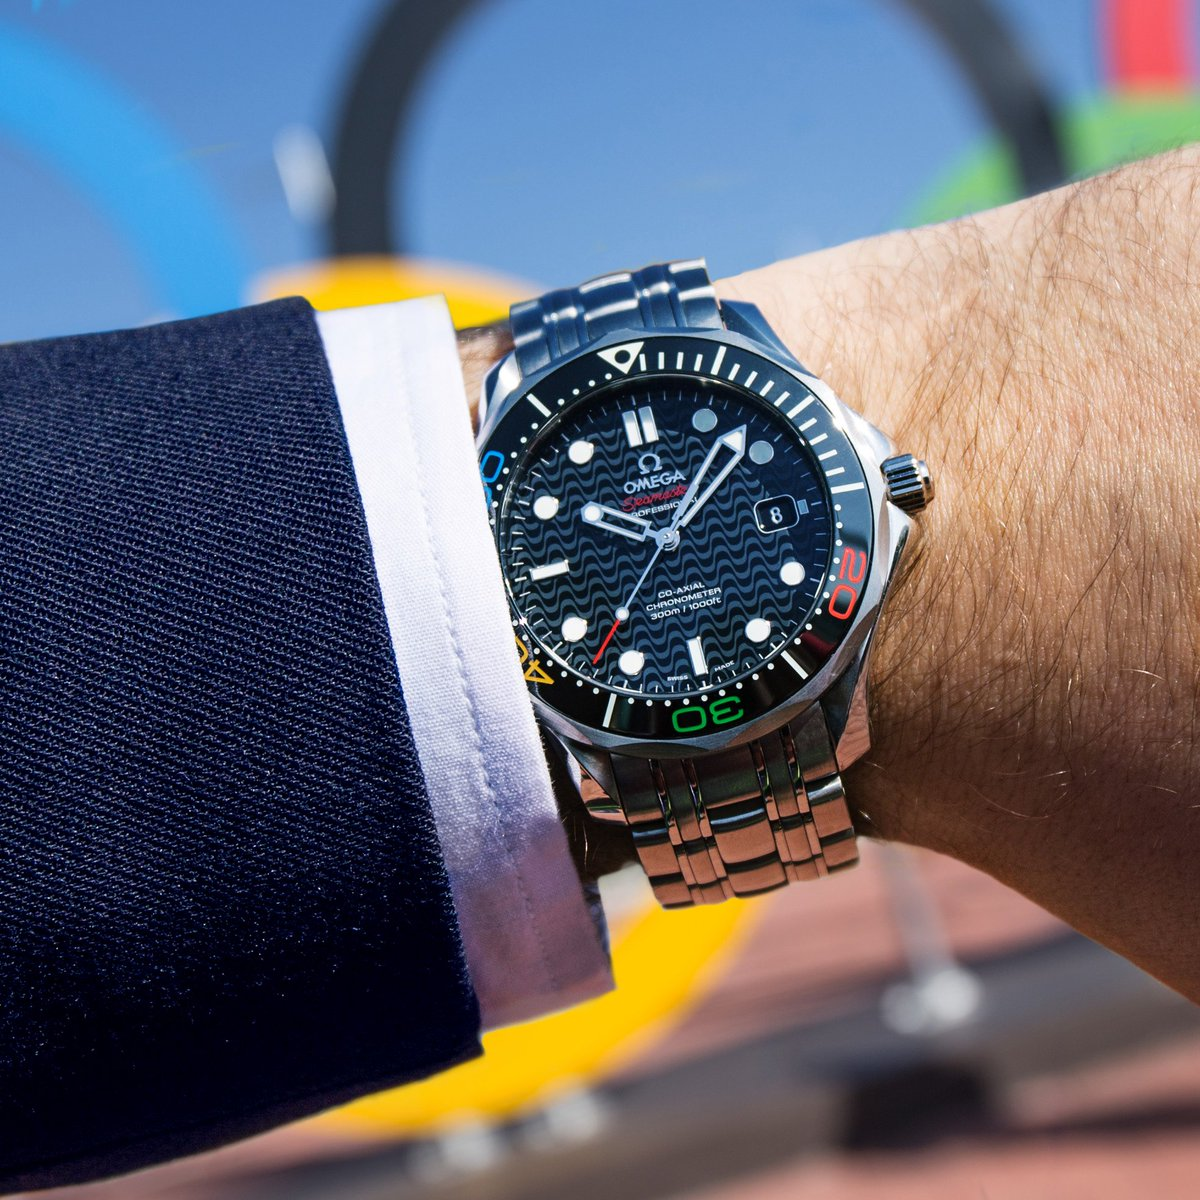 Discussion on this topic: A Closer Look Inside Rios Exclusive Omega , a-closer-look-inside-rios-exclusive-omega/